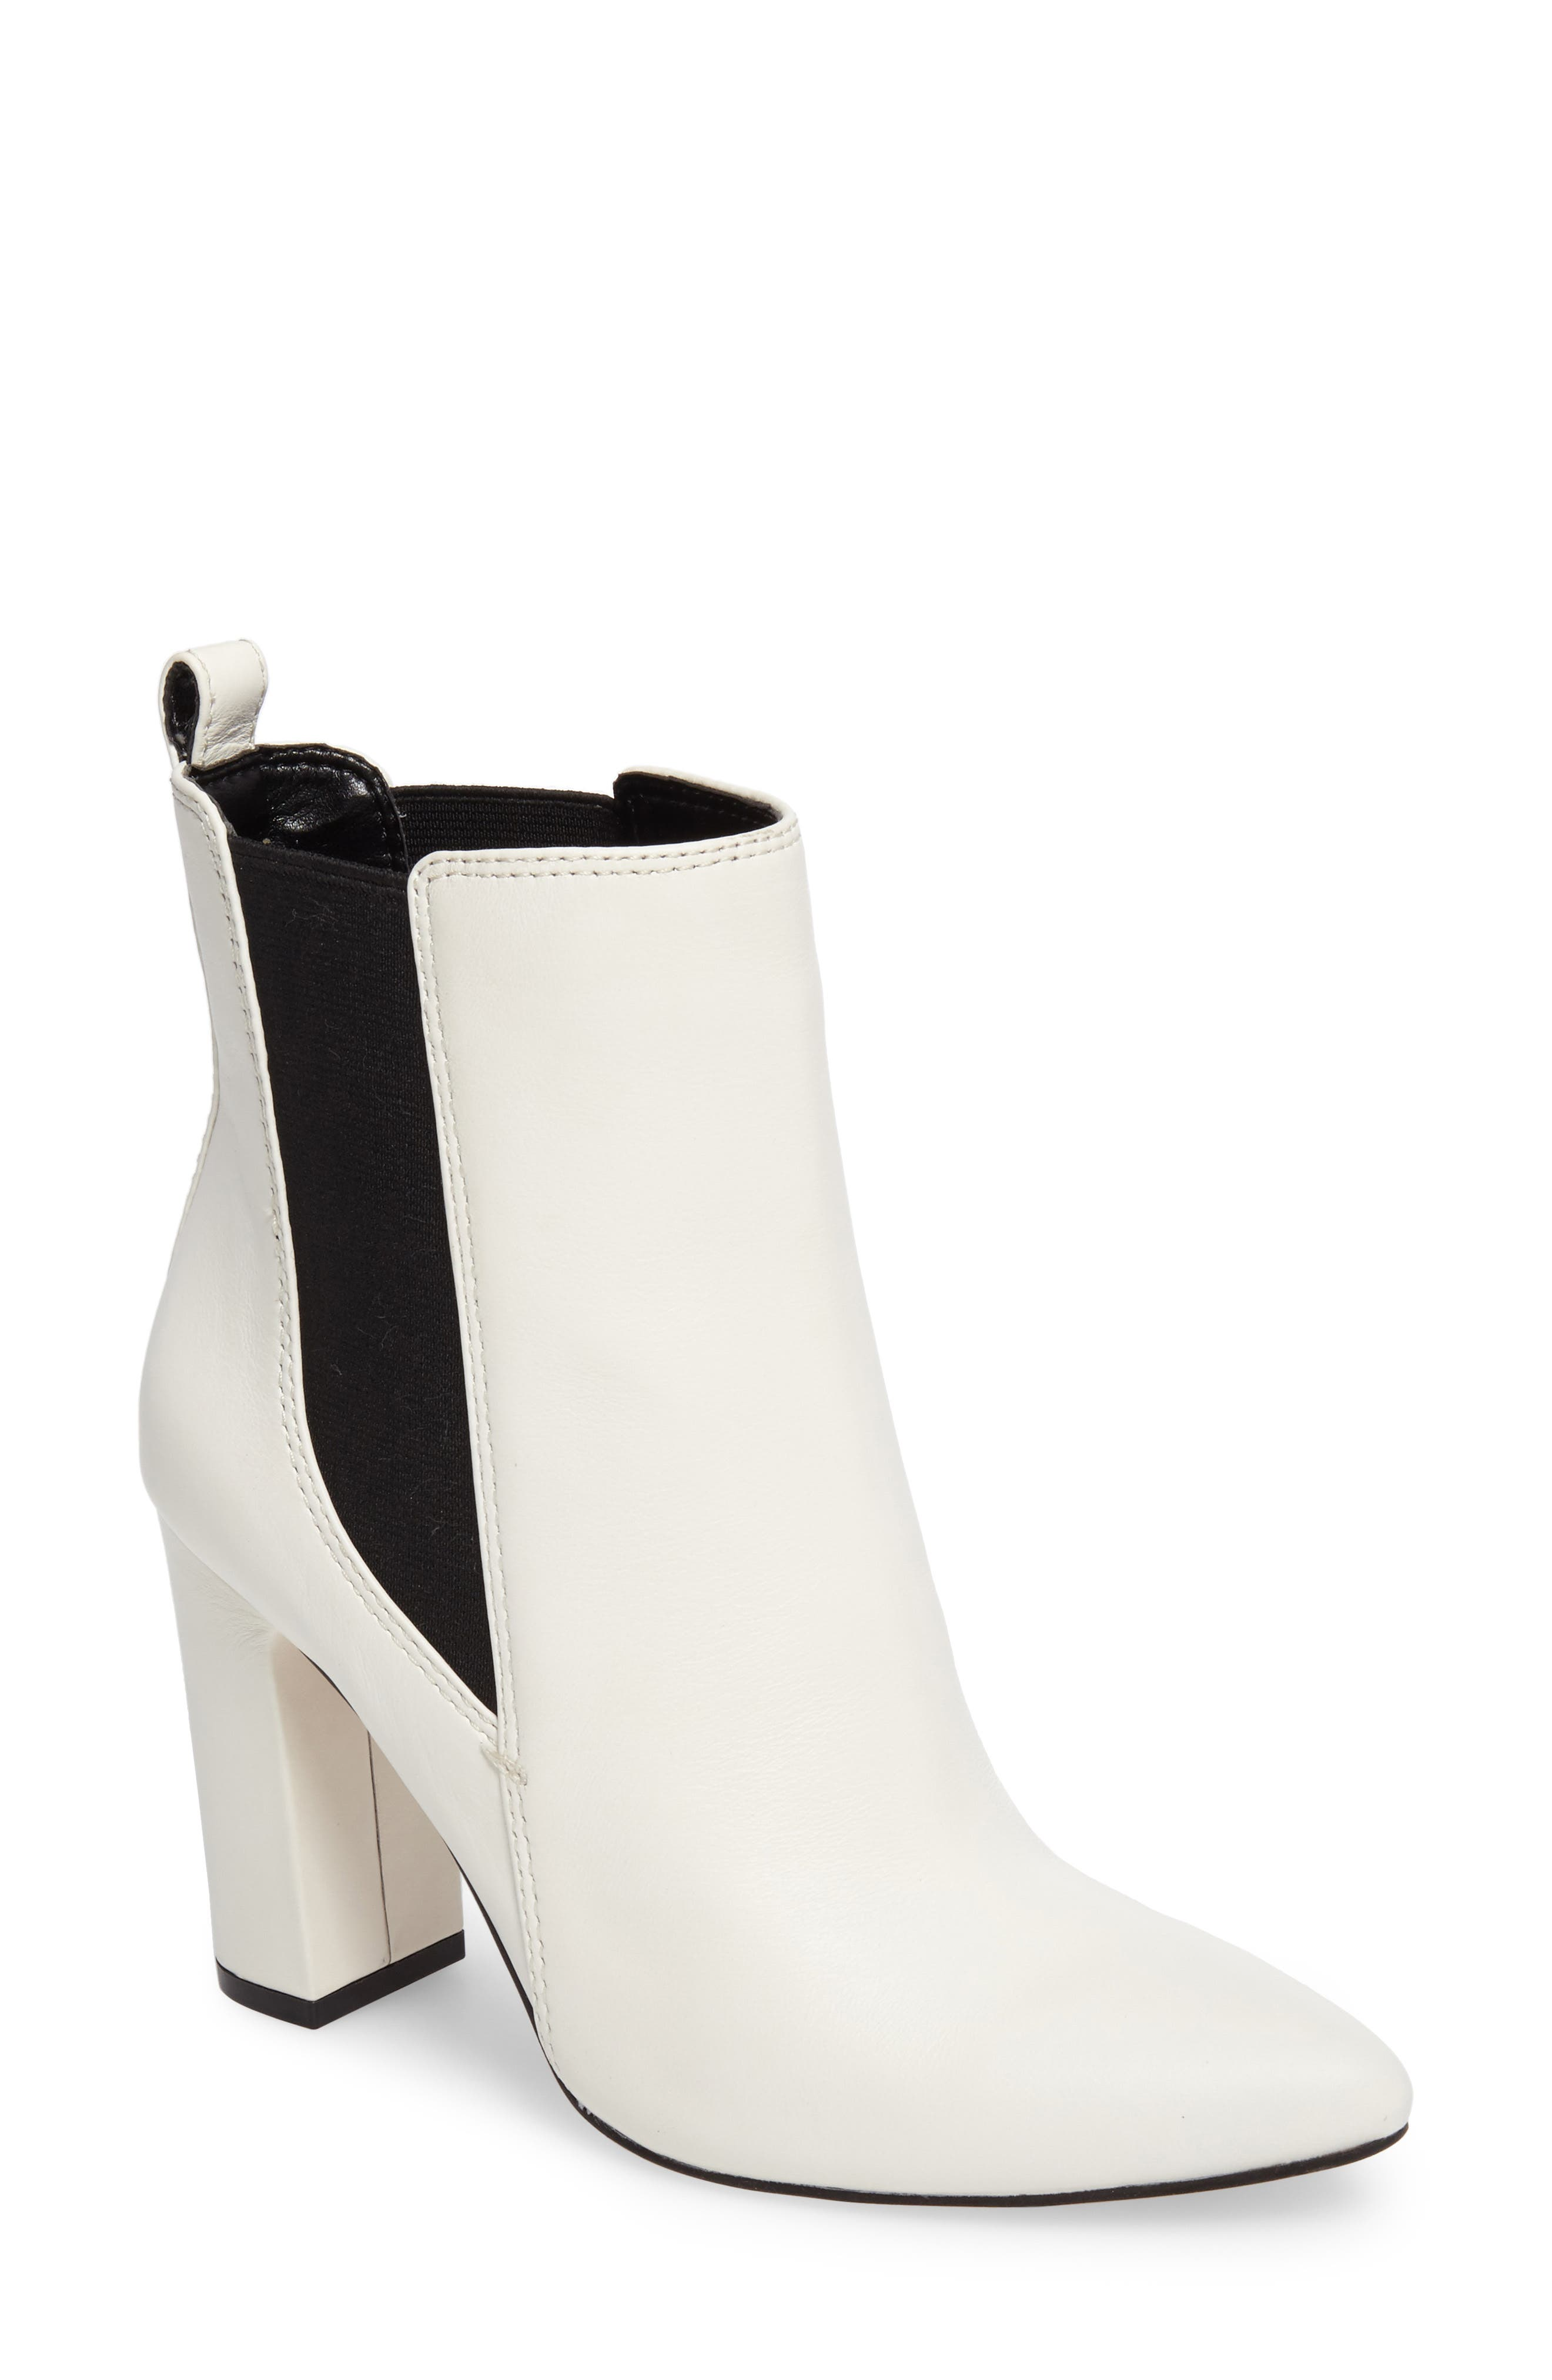 Main Image - Vince Camuto Britsy Bootie (Women)